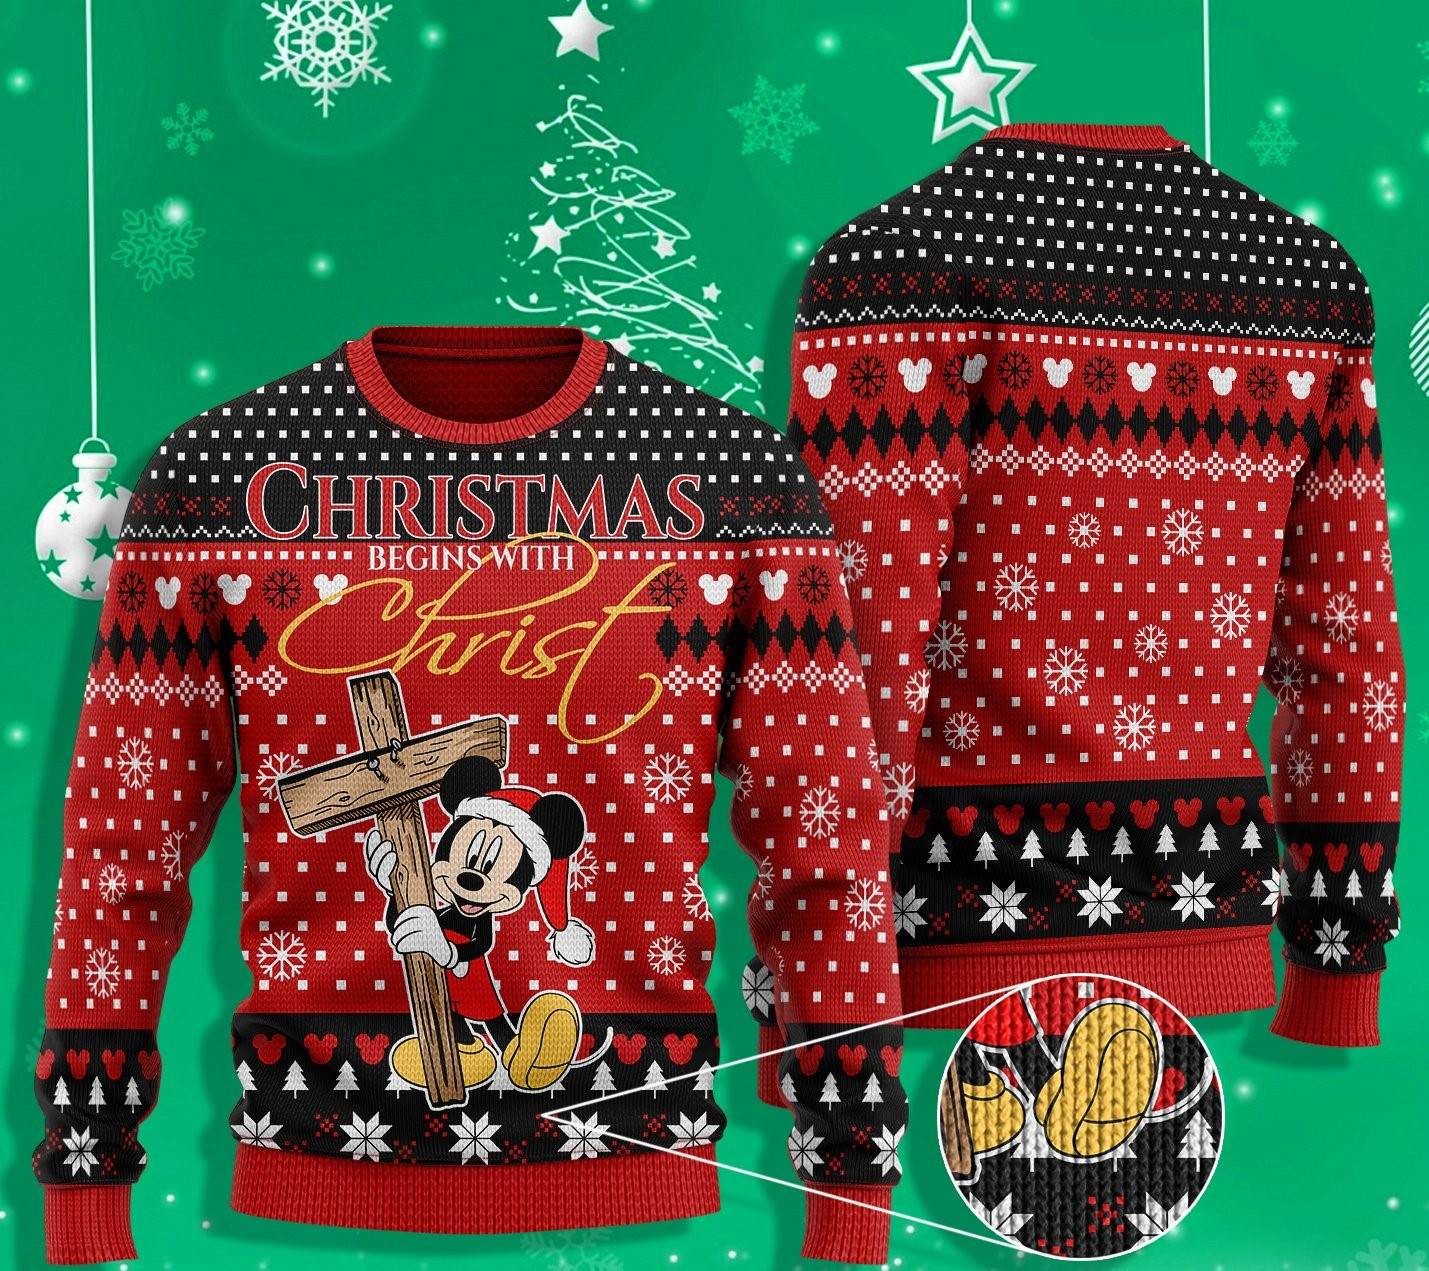 mickey mouse christmas begins with Christ ugly christmas sweater 2 - Copy